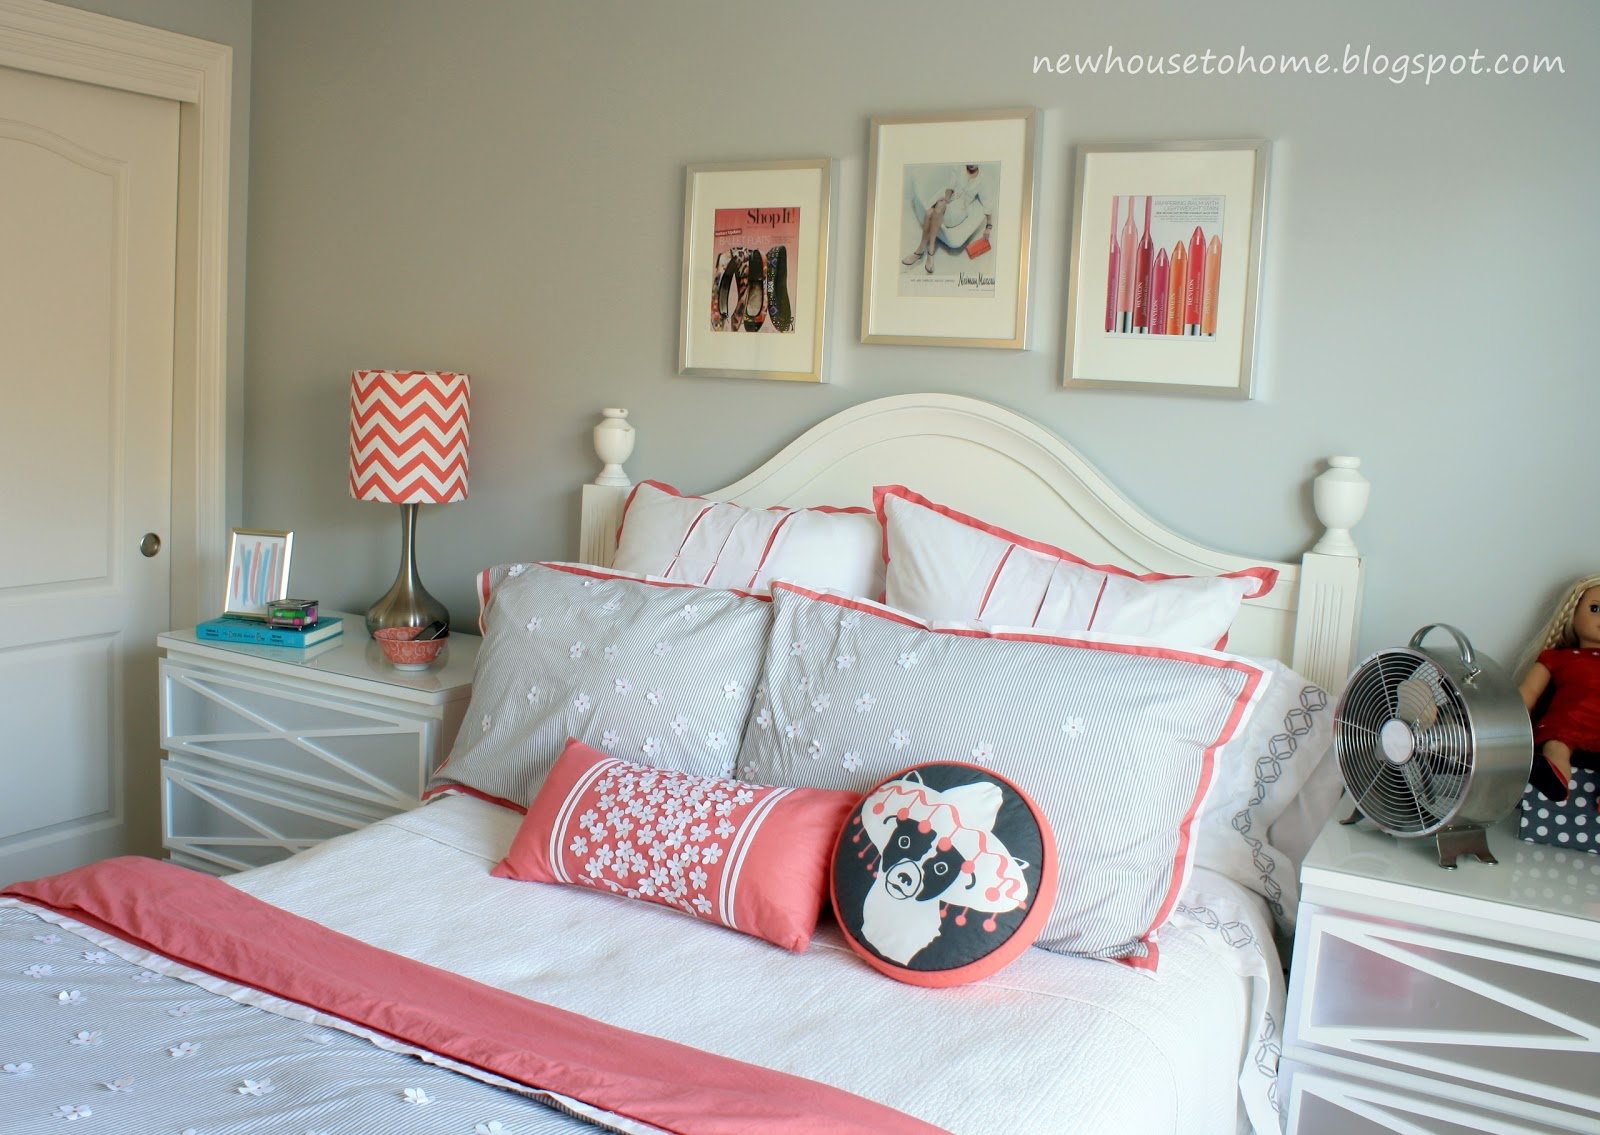 the pretty coral and gray bedding that Abigail selected for her room  title=